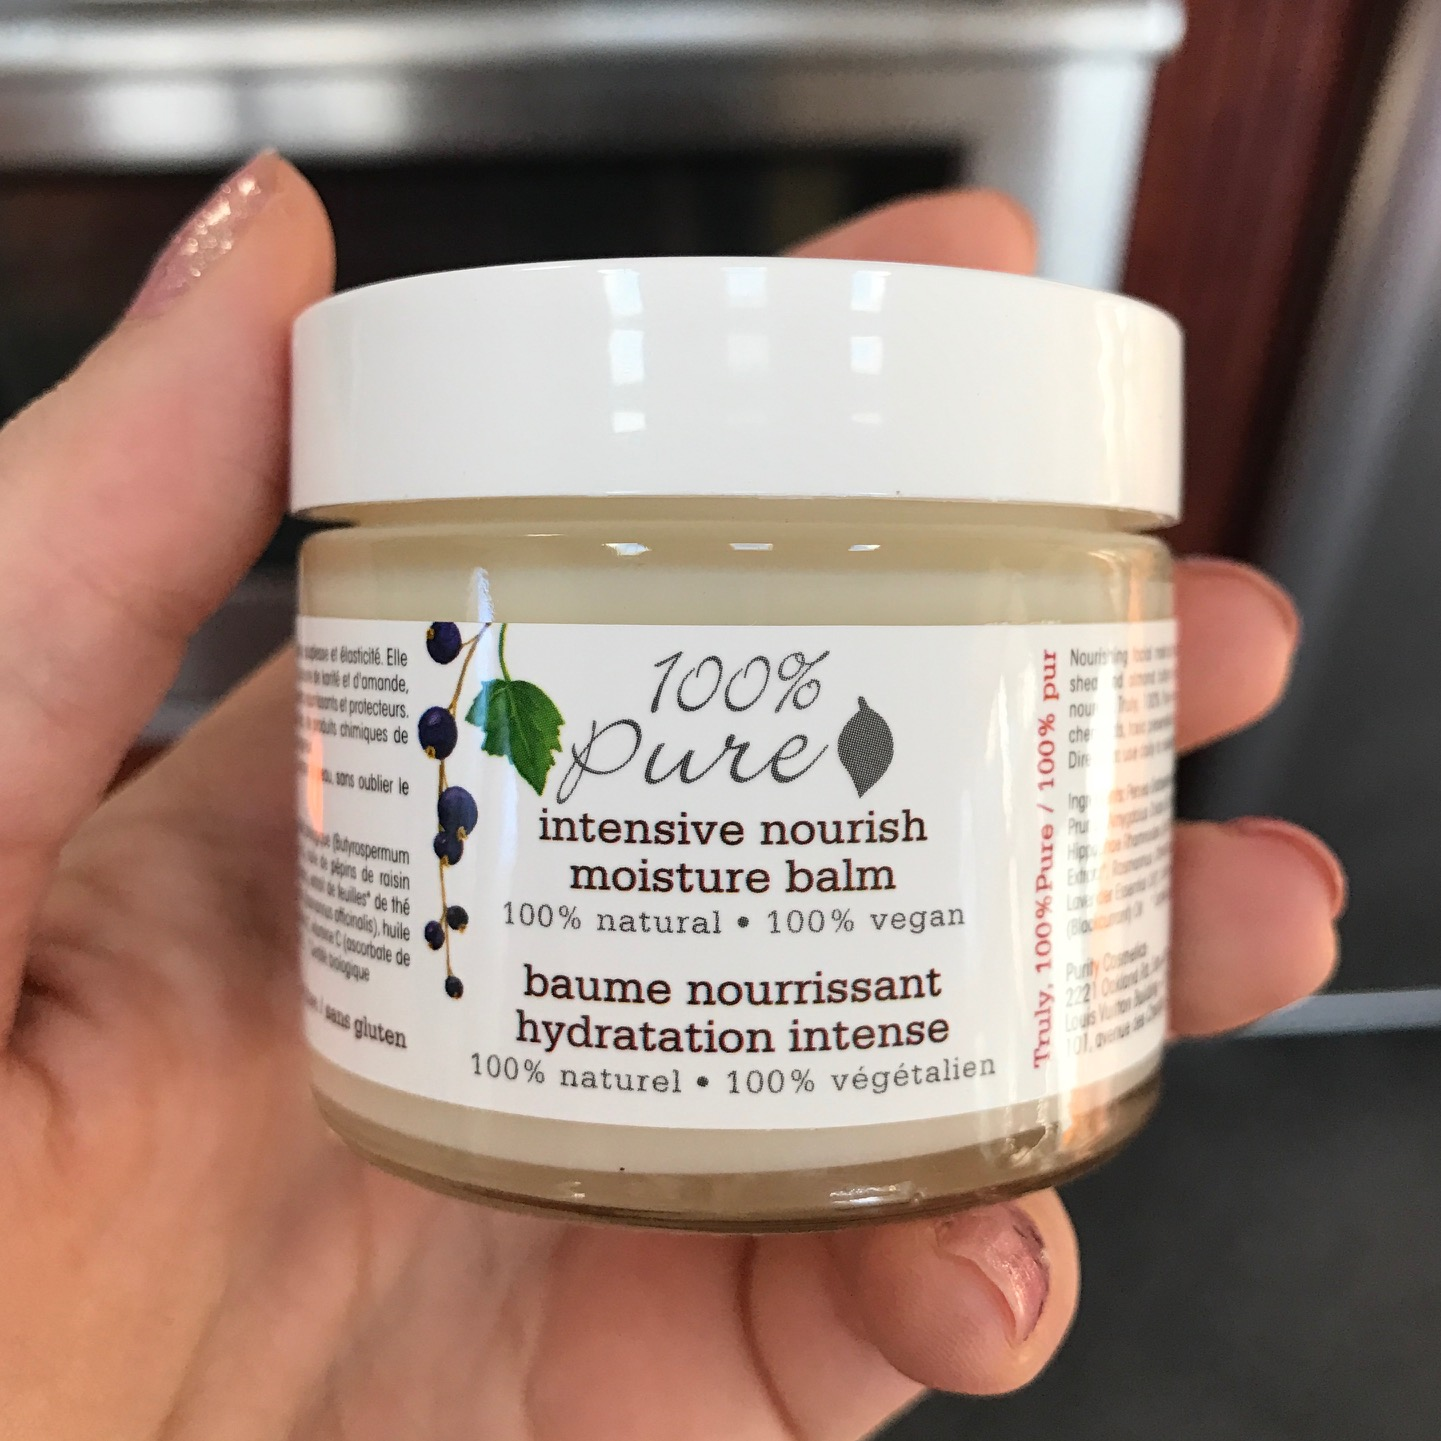 100 Percent Pure Intensive Nourish Moisture Balm